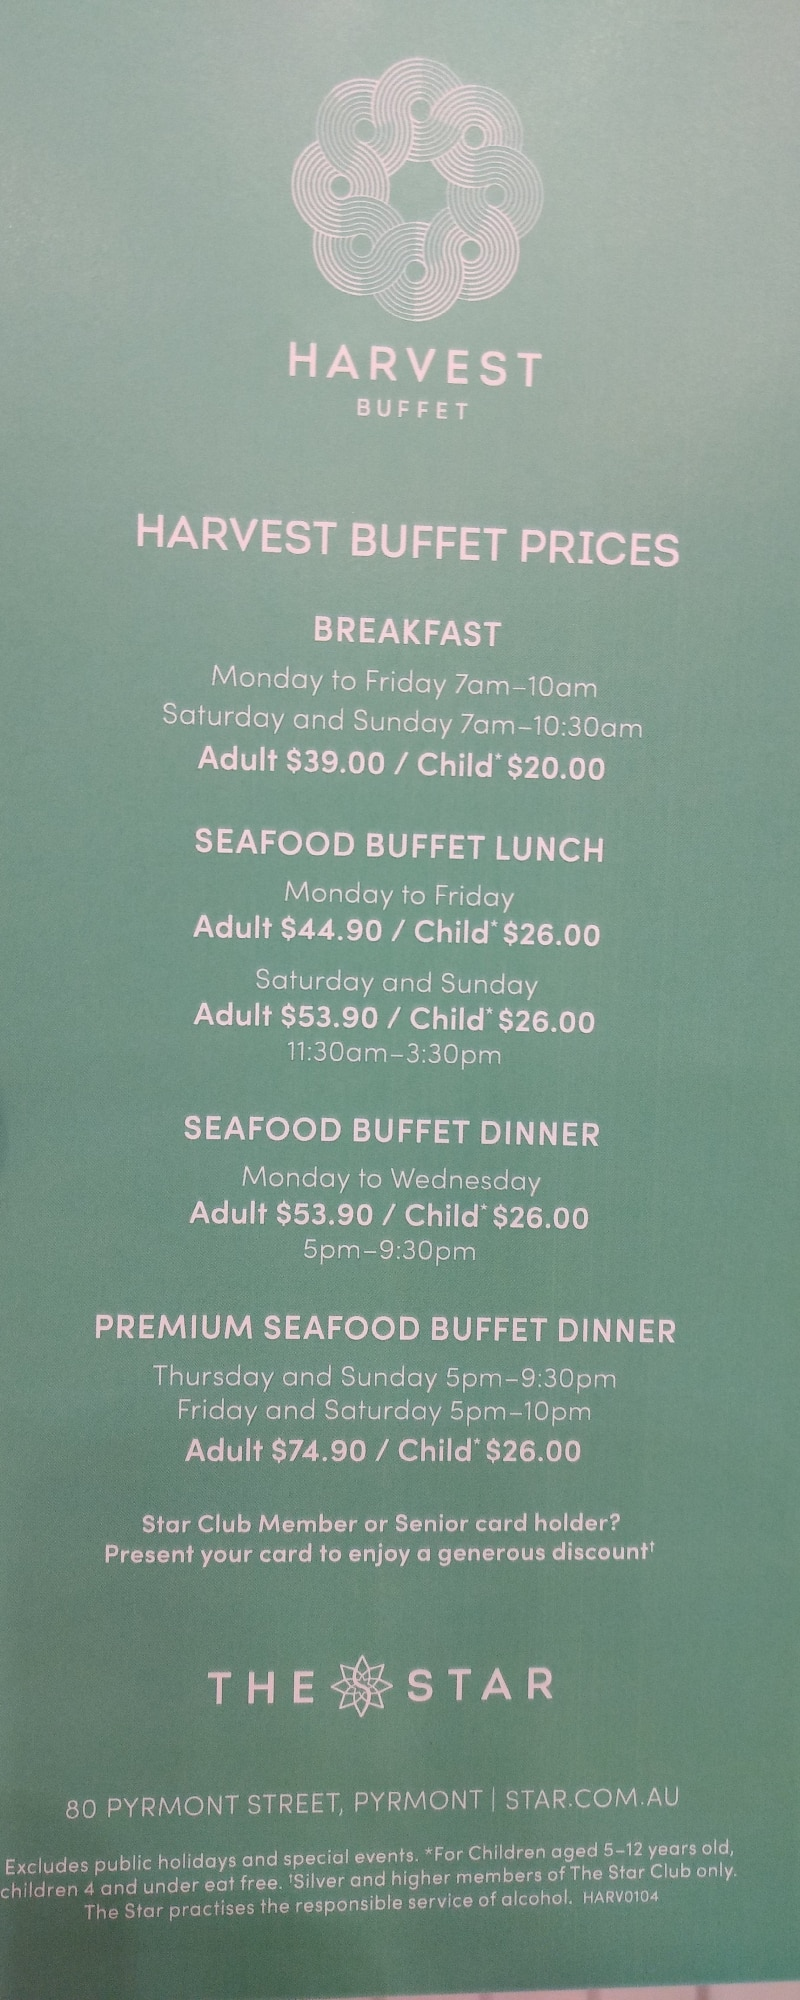 Star casino sydney harvest buffet all you can eat